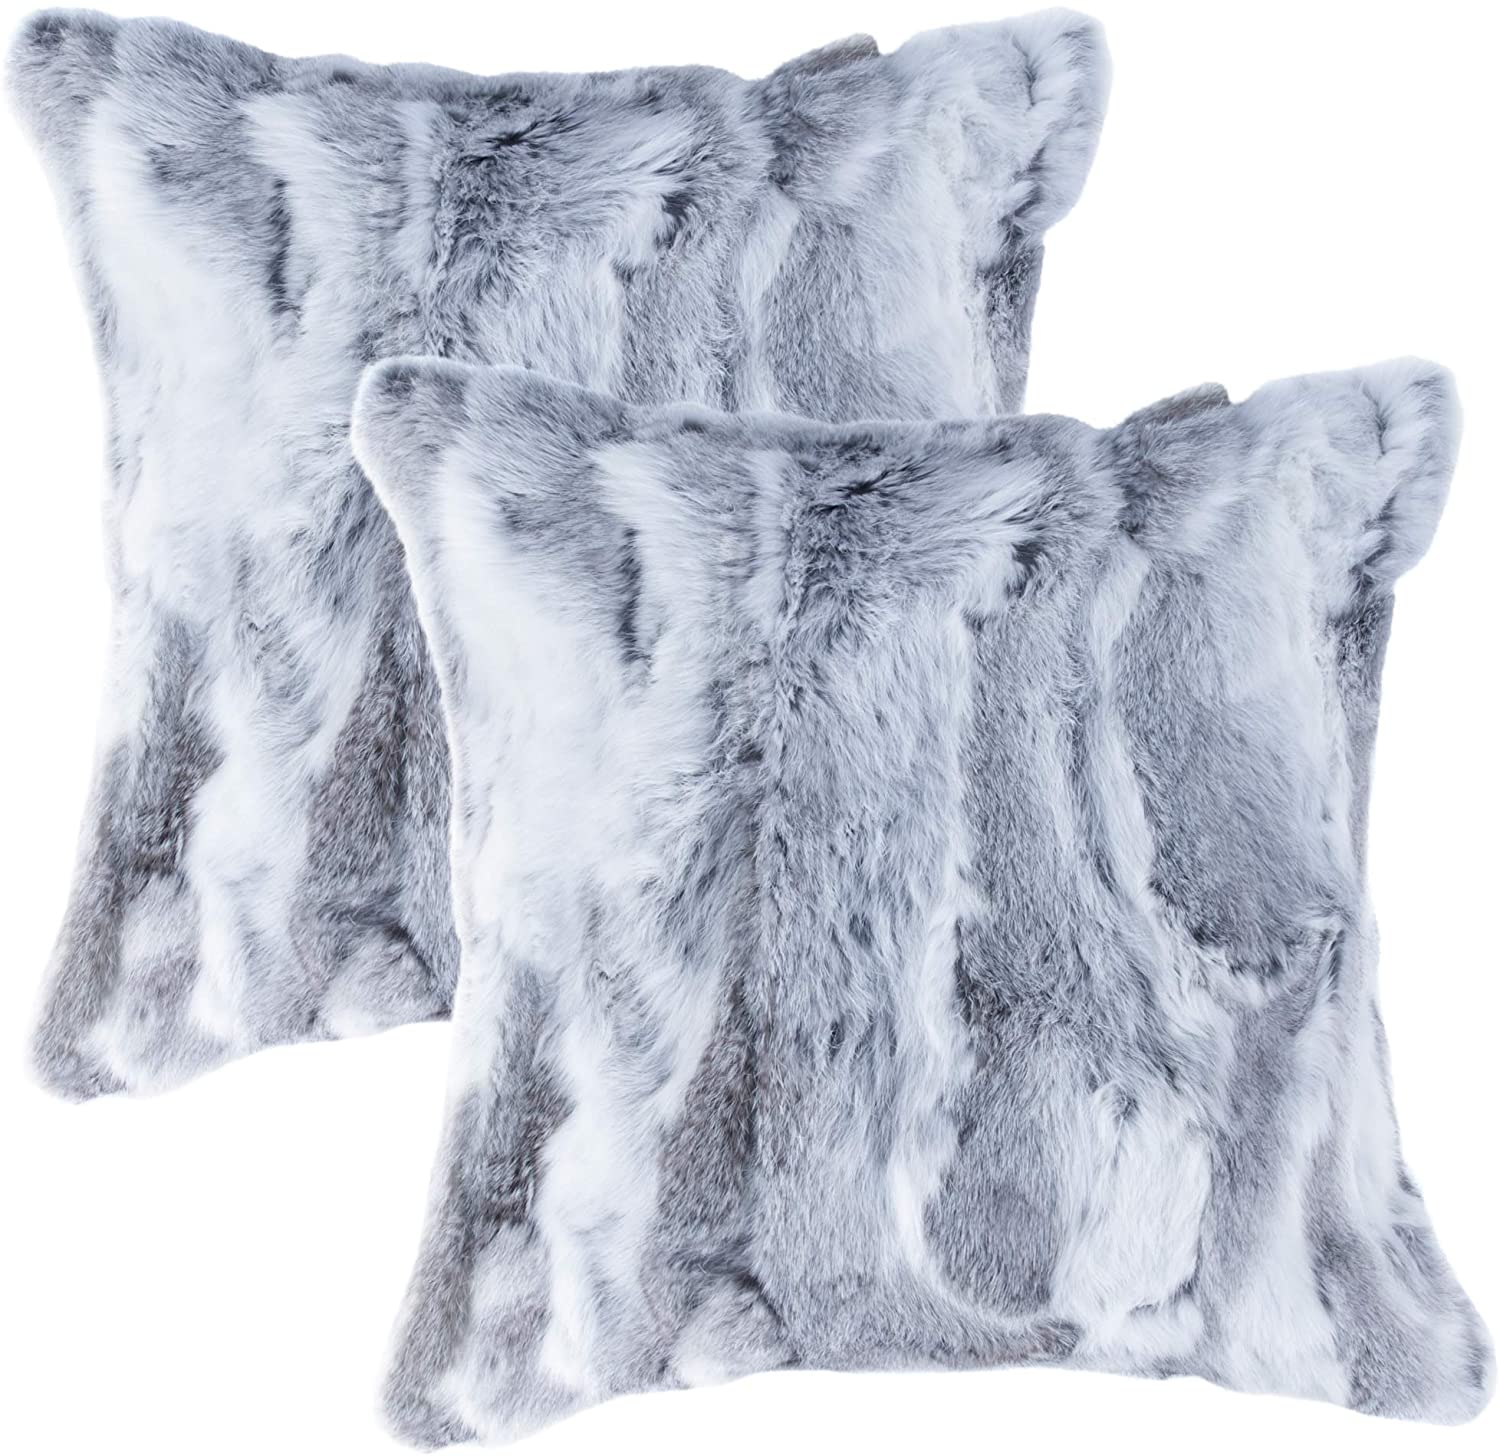 Set of 2, Natural Handcrafted Rabbit Fur Pillow with Polyfil Insert and Zipper Closure, Grey, 18 in x 18 in